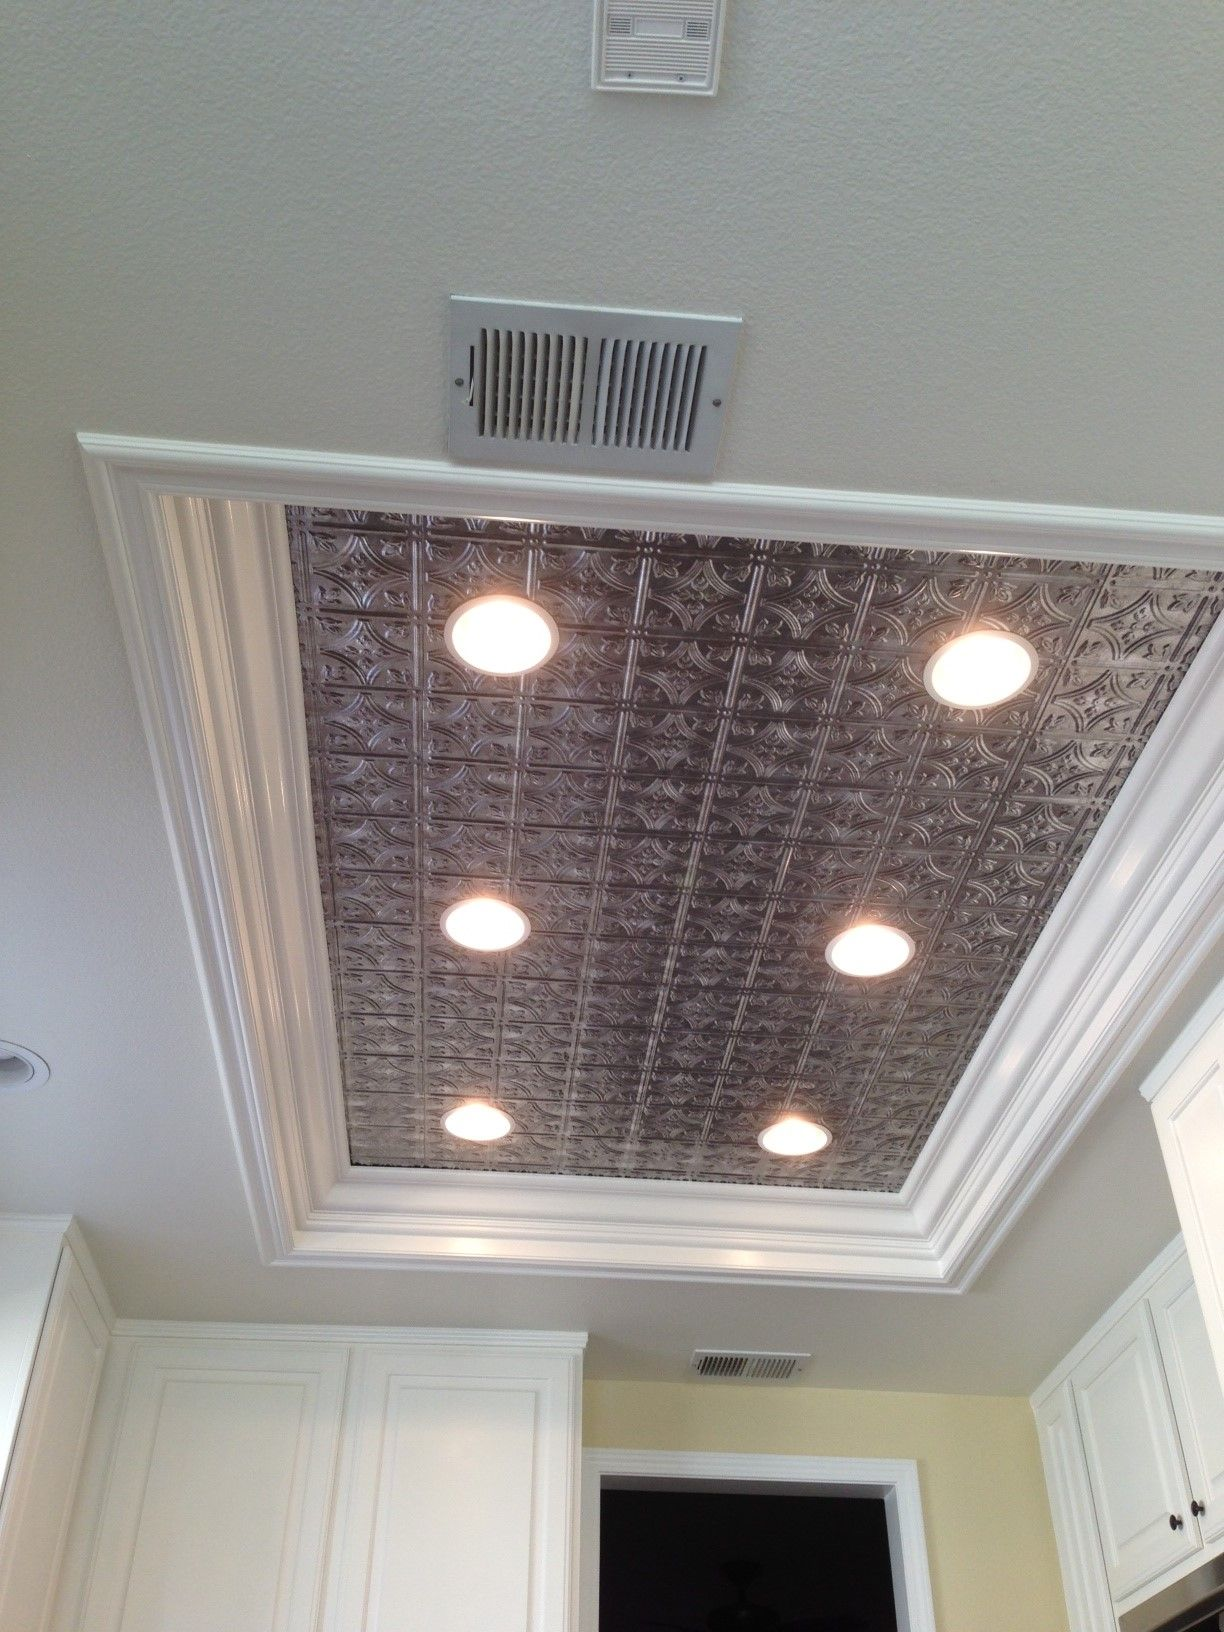 Ceiling Kitchen Remodel Flourescent Light Box In Kitchen We Also Replaced The